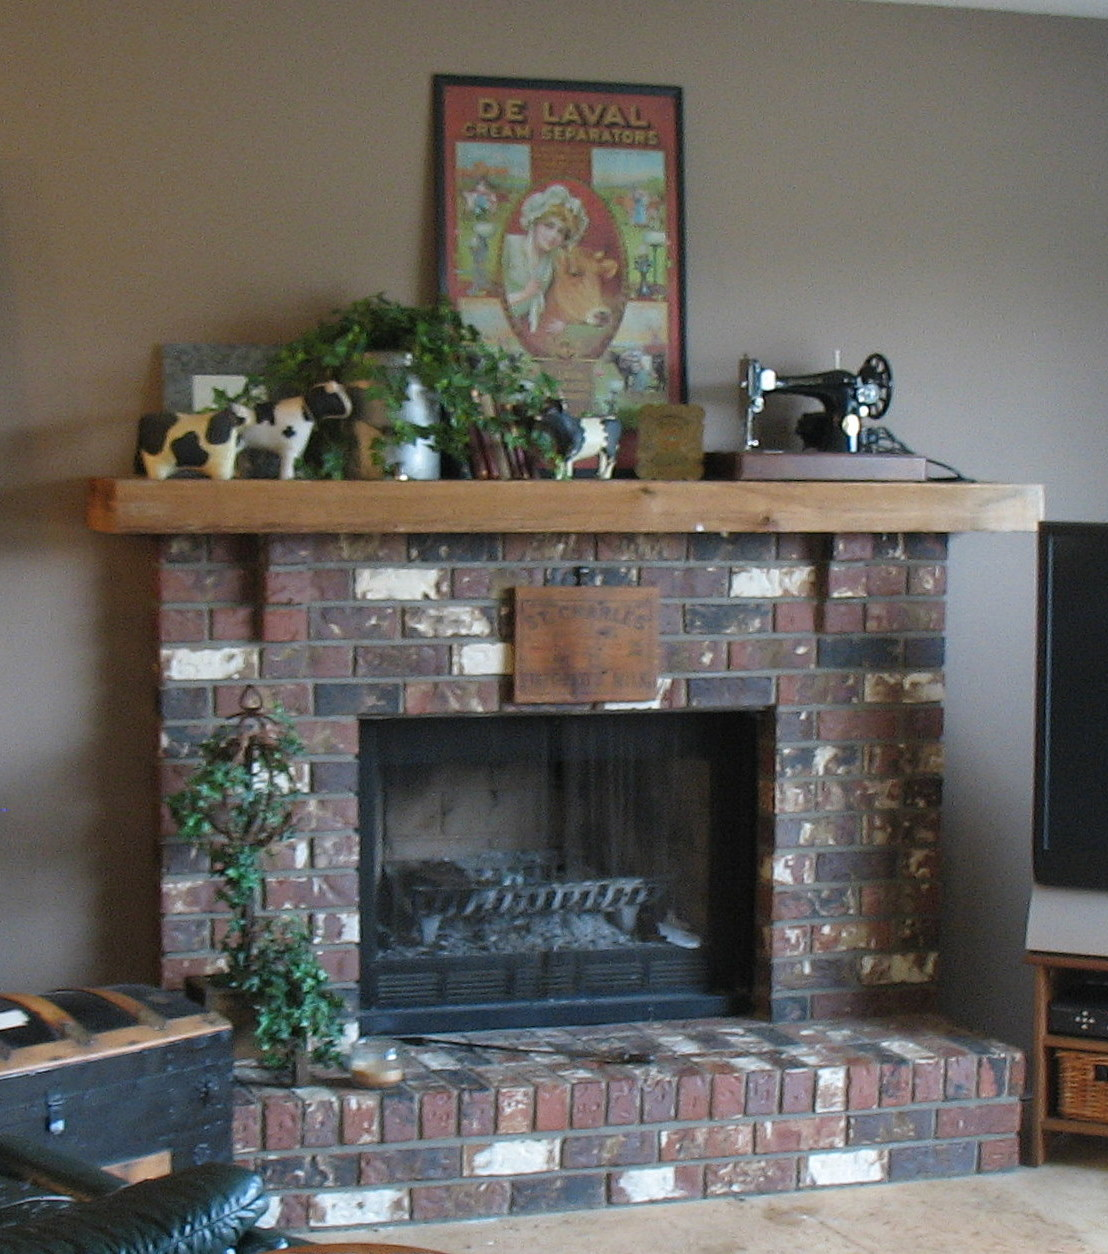 Small Inside Room Fireplace Decorated With Painting And Plants That